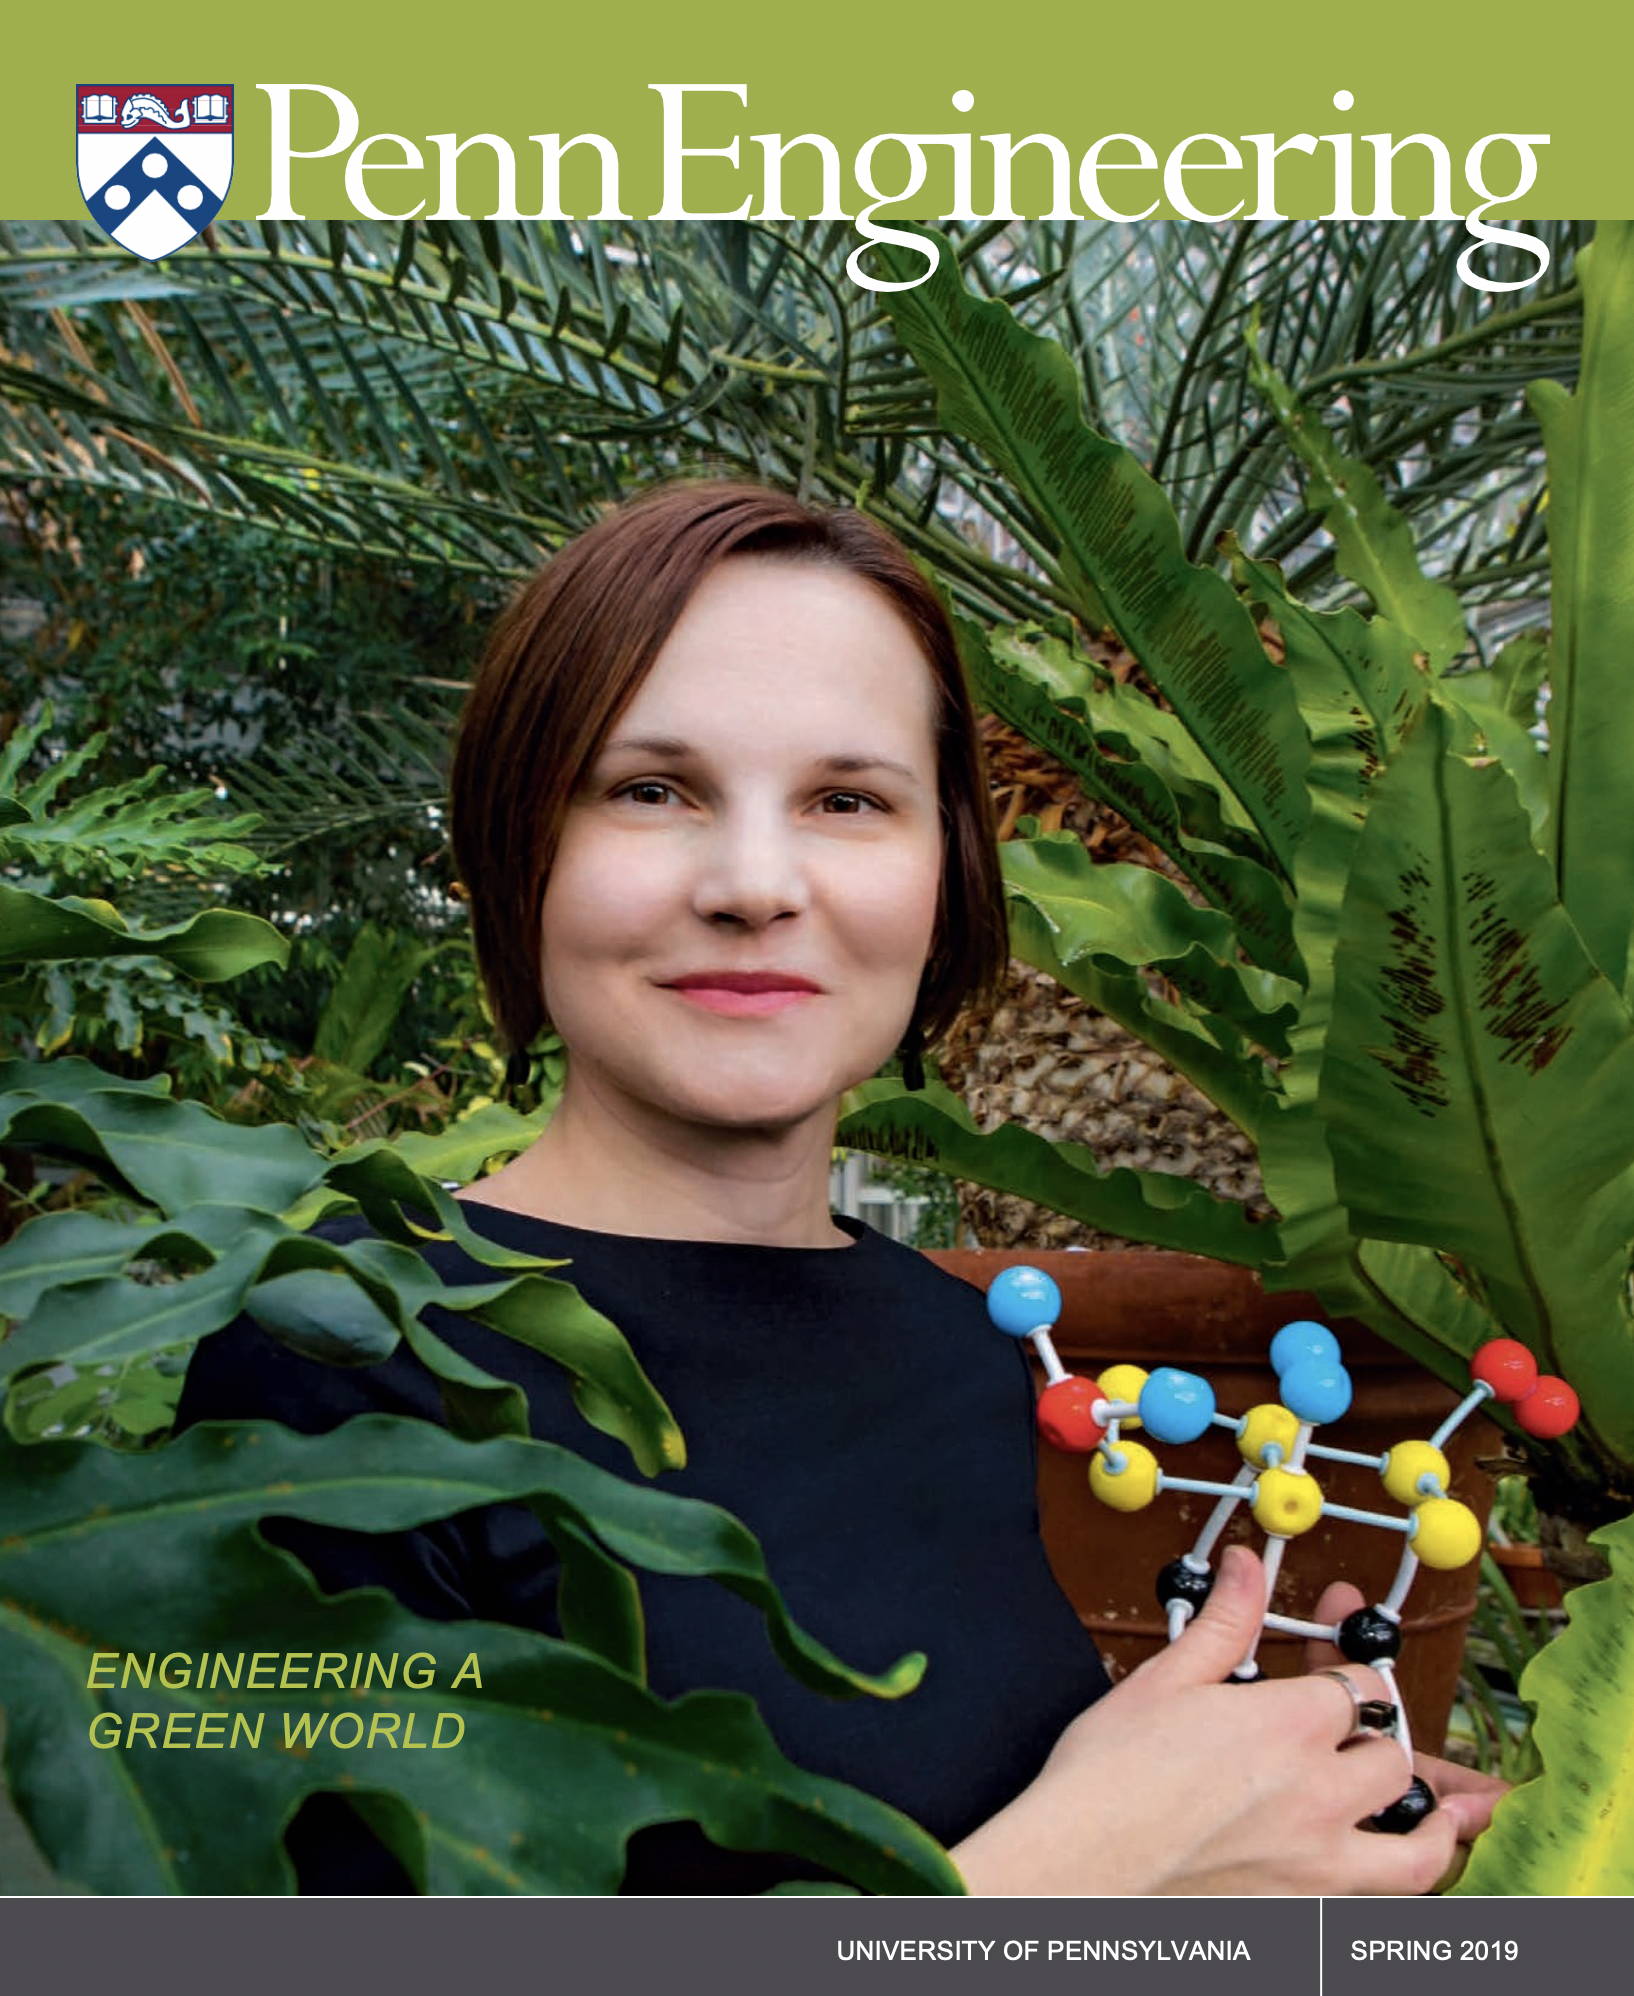 Aleksandra Vojvodic stands in a greenhouse, holding a model of a catalysis reaction.